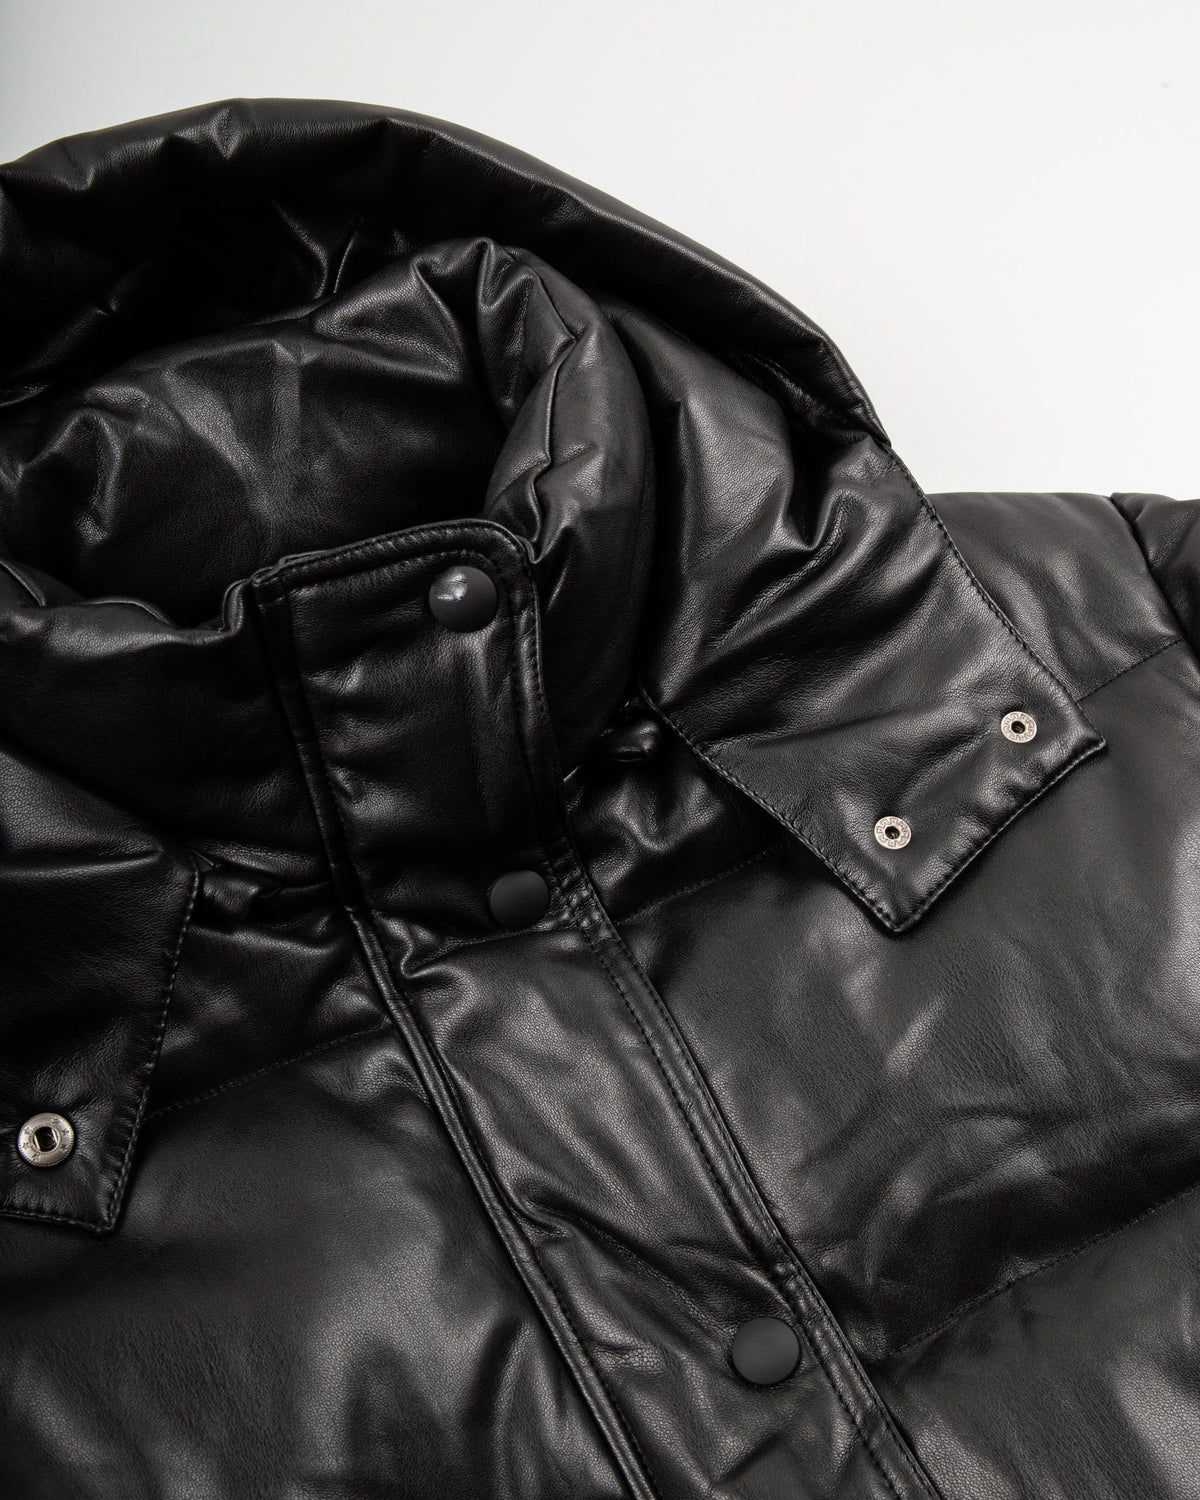 'Selma' Quilted Vegan Leather Jacket